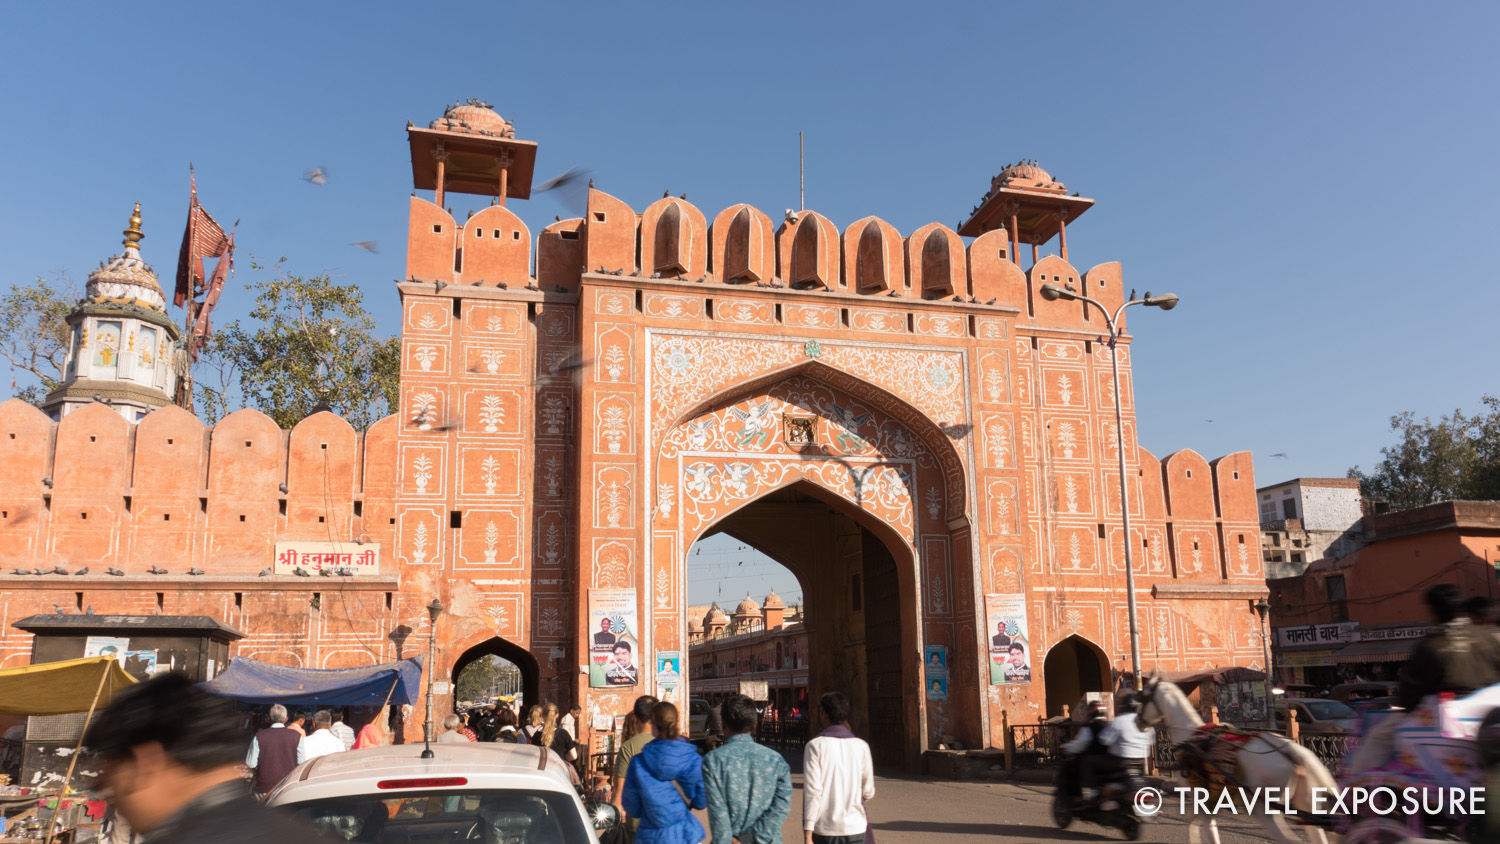 One of seven gates into Jaipur, part of the old city wall built in 1727